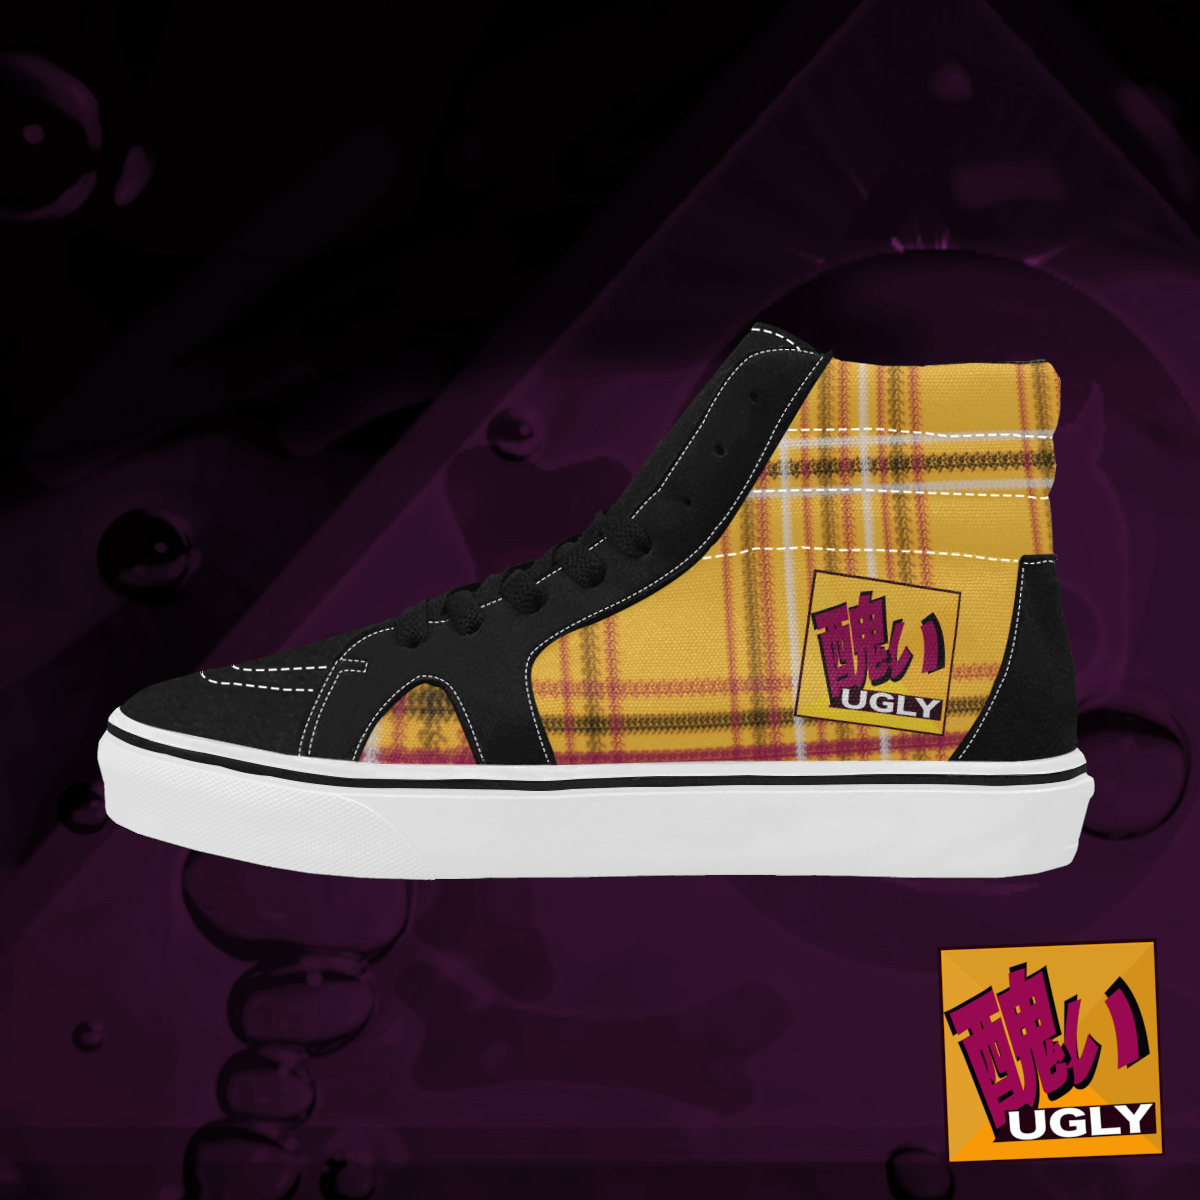 UGLY tartan high top skate shoes The Lowest of Low Tang